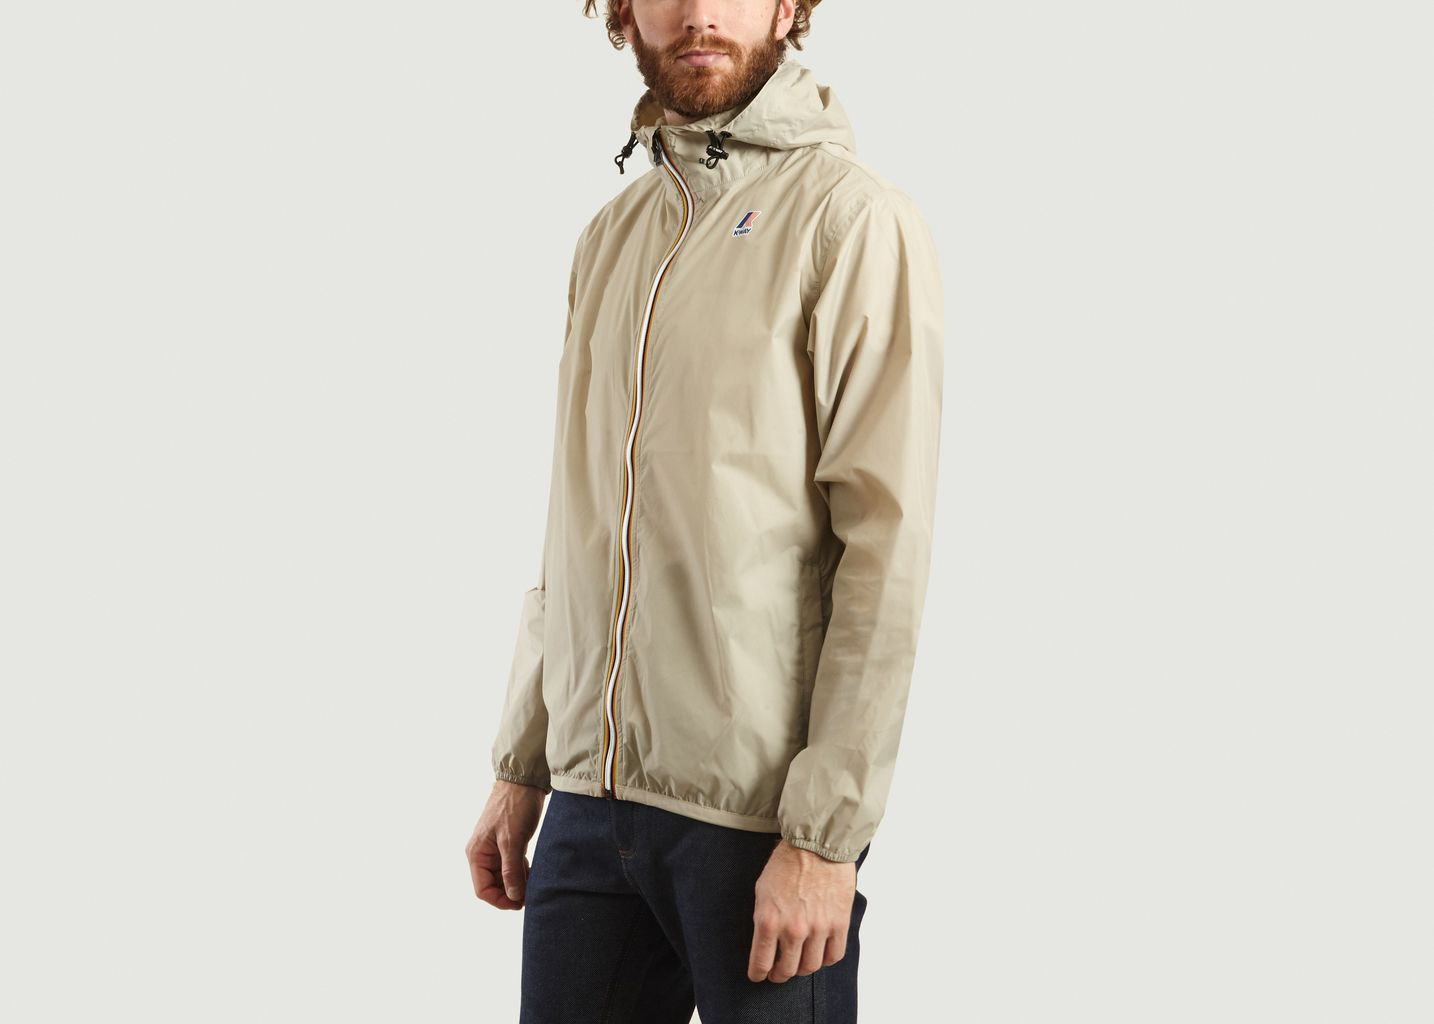 Veste coupe-vent Le Vrai Claude 3.0 - K-Way